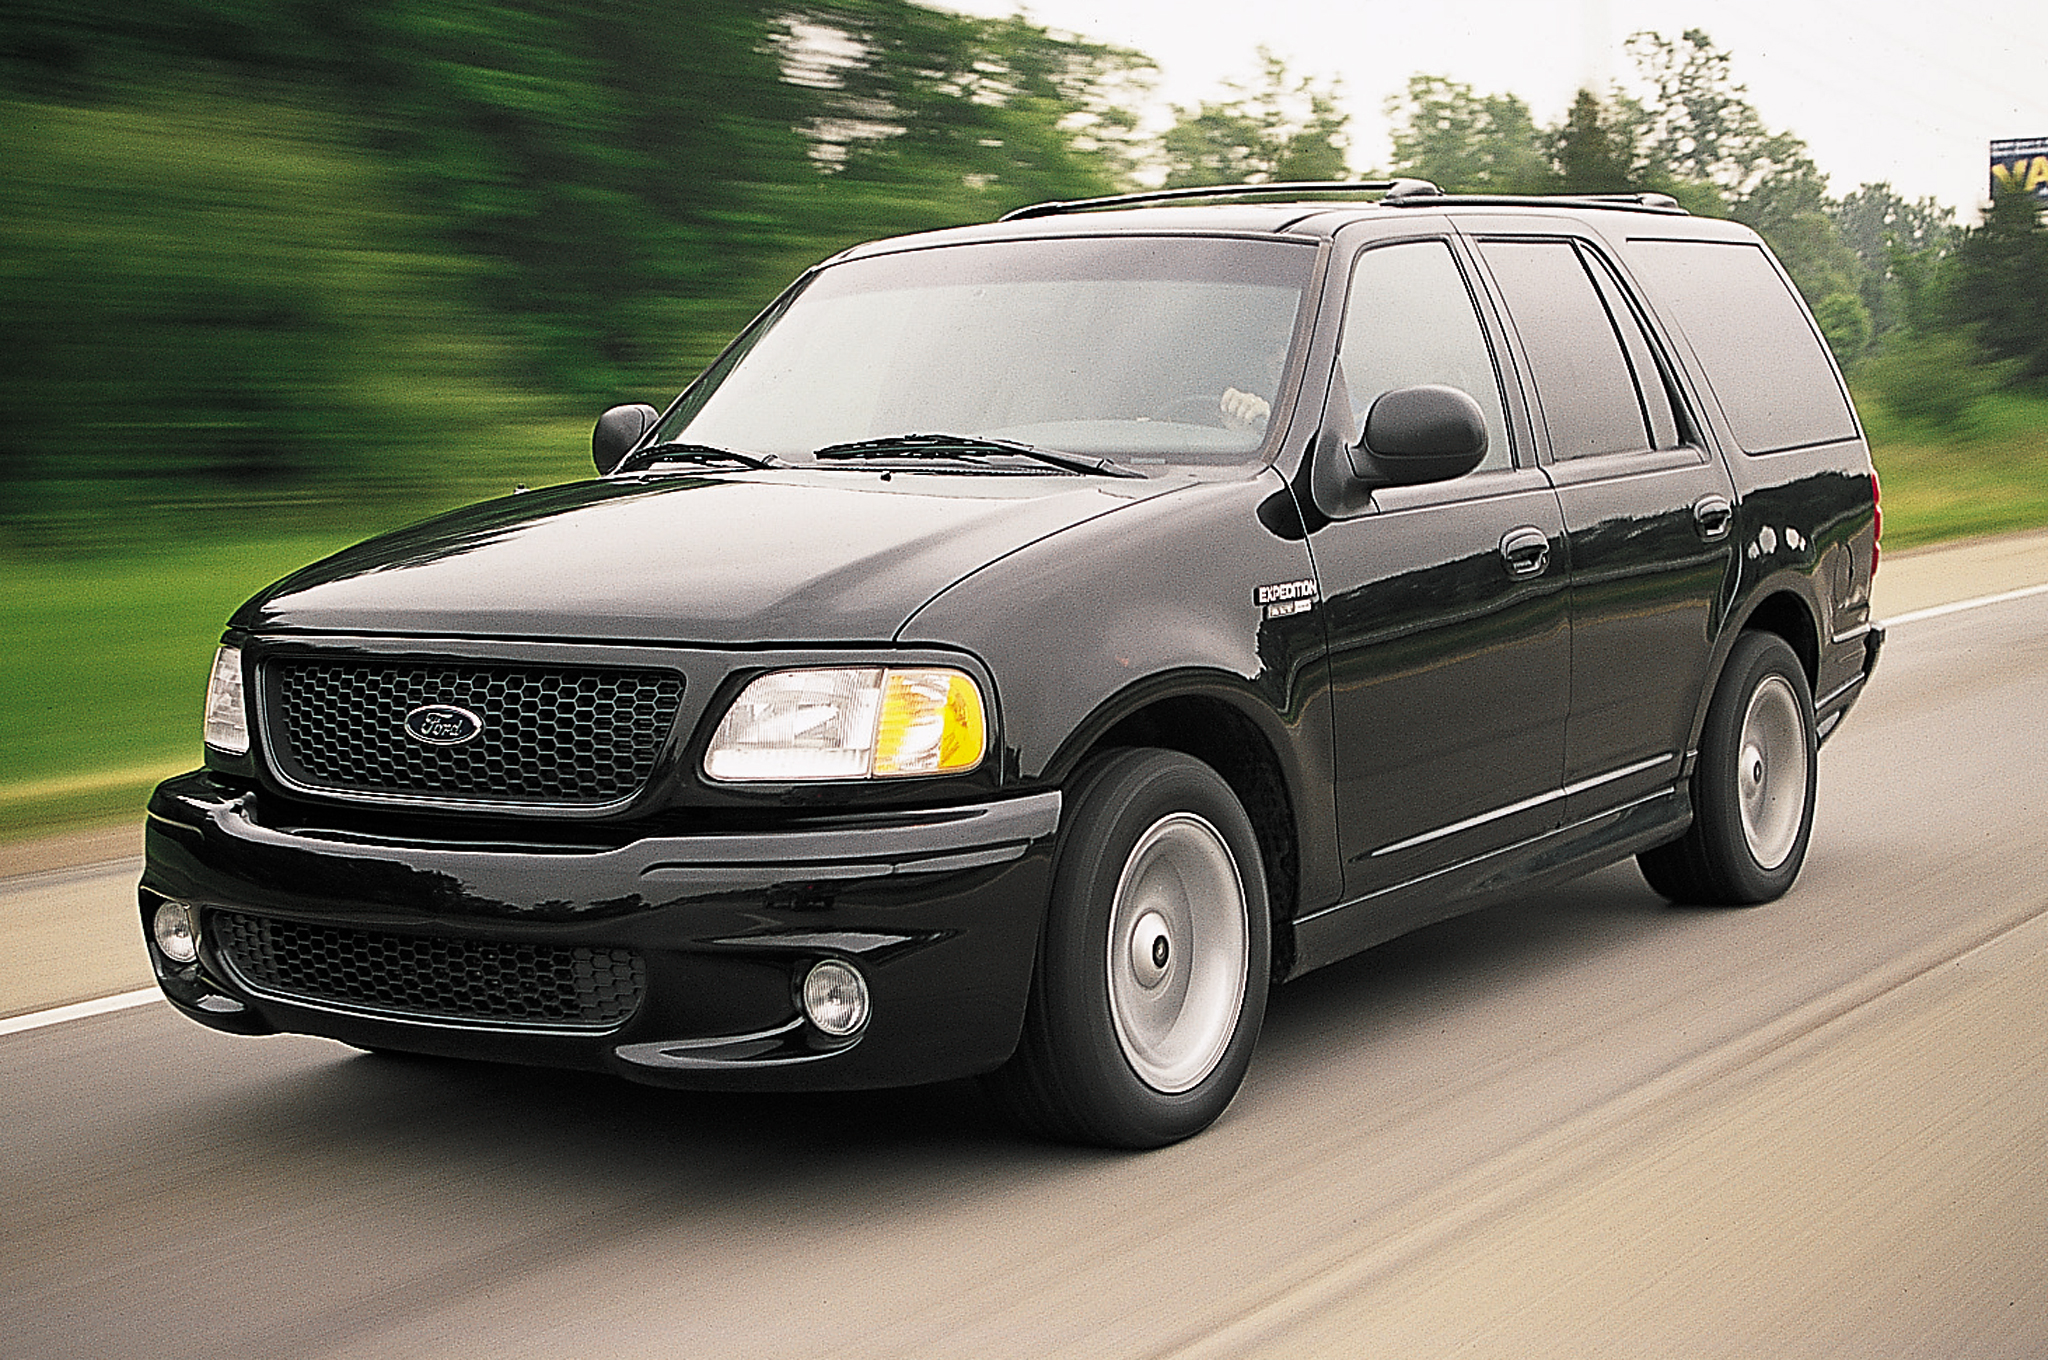 Ford Expedition 2000 foto - 3